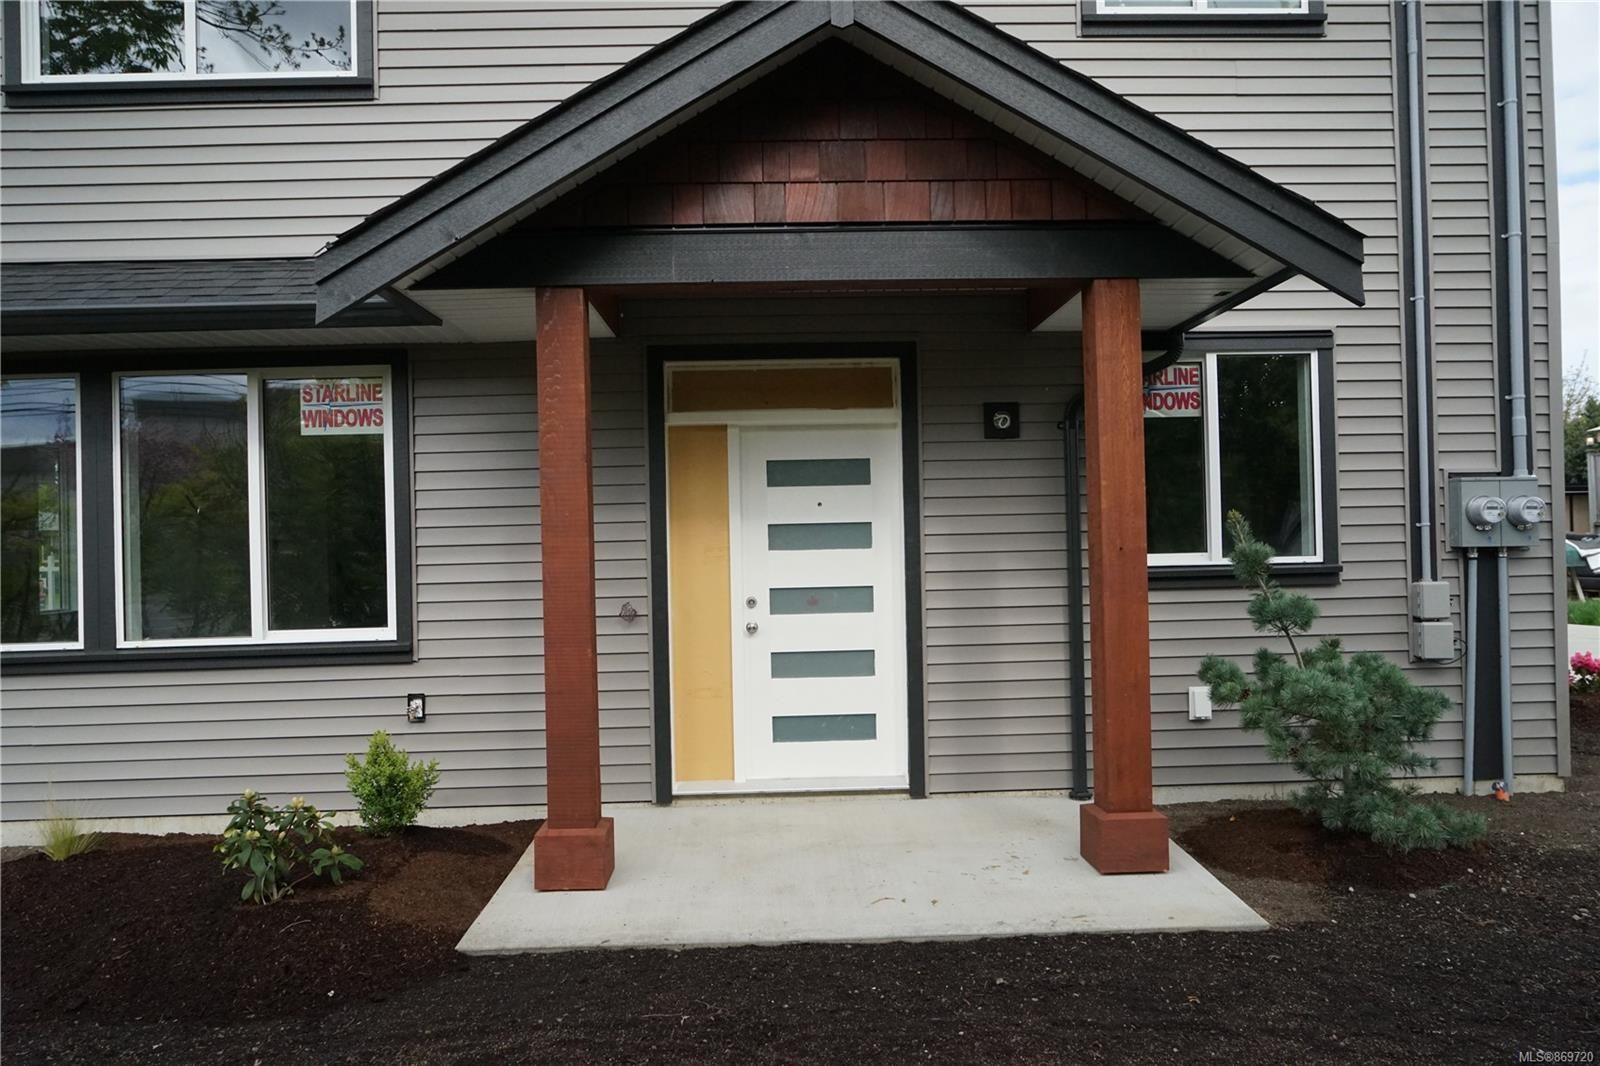 Photo 2: Photos: 770 Bruce Ave in : Na South Nanaimo House for sale (Nanaimo)  : MLS®# 869720